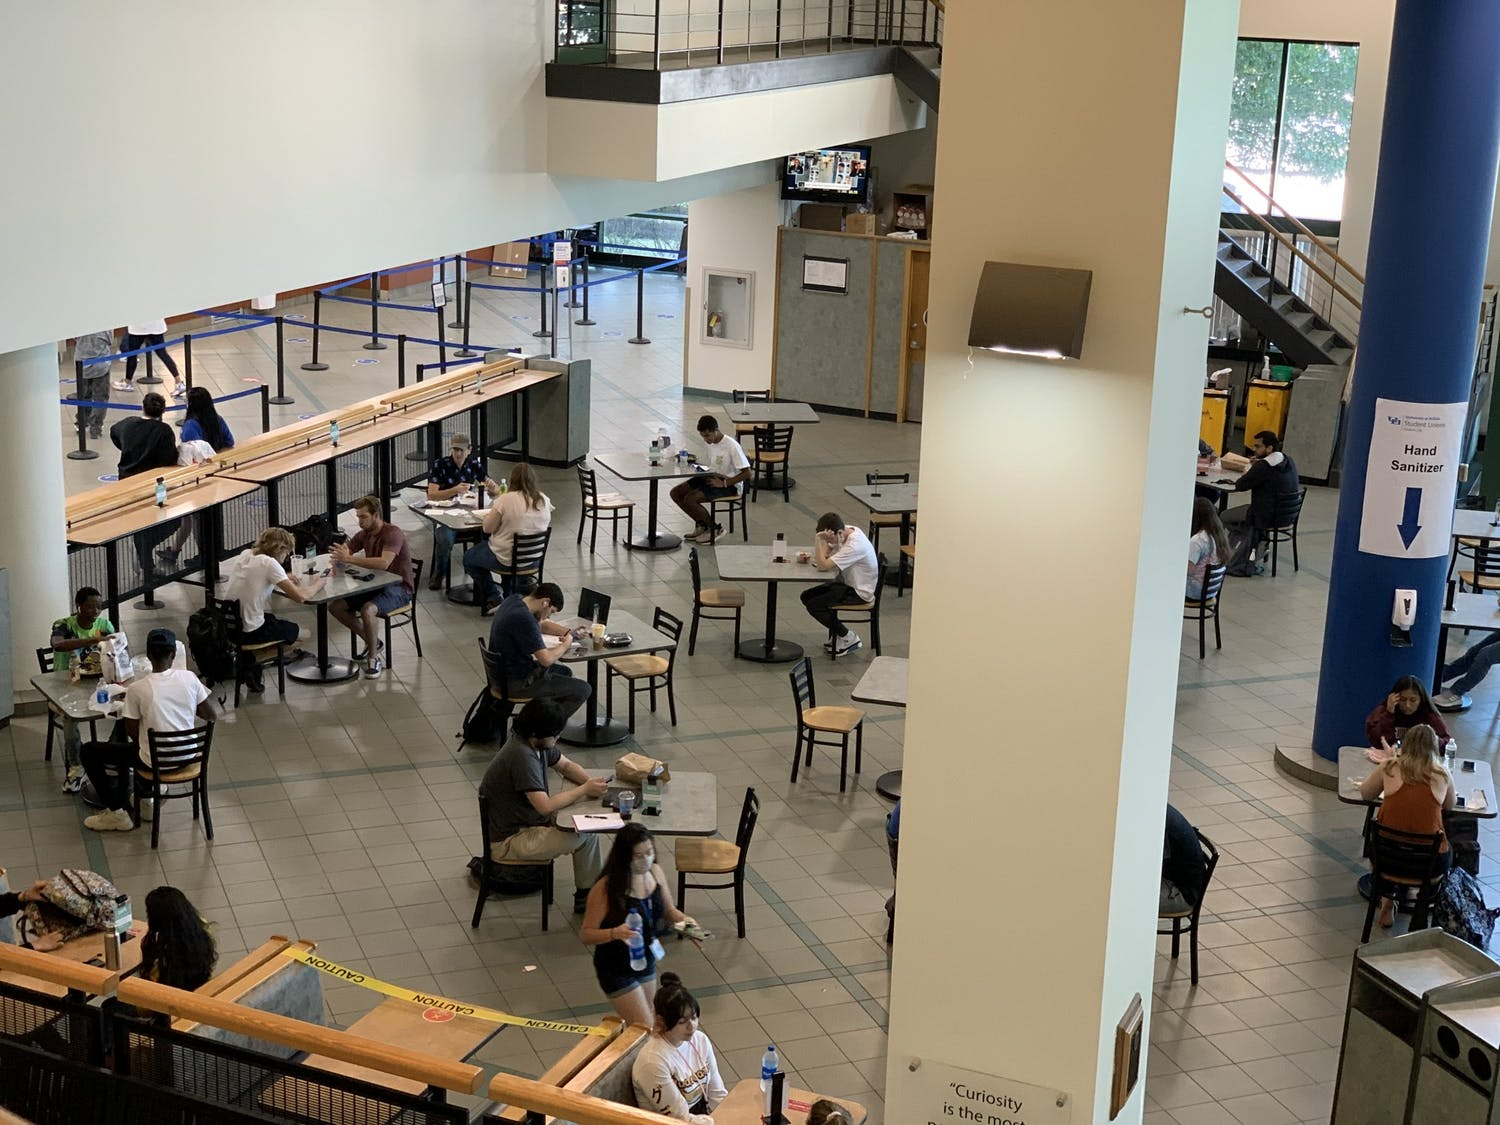 UB has implemented socially distanced seating in the Student Union.